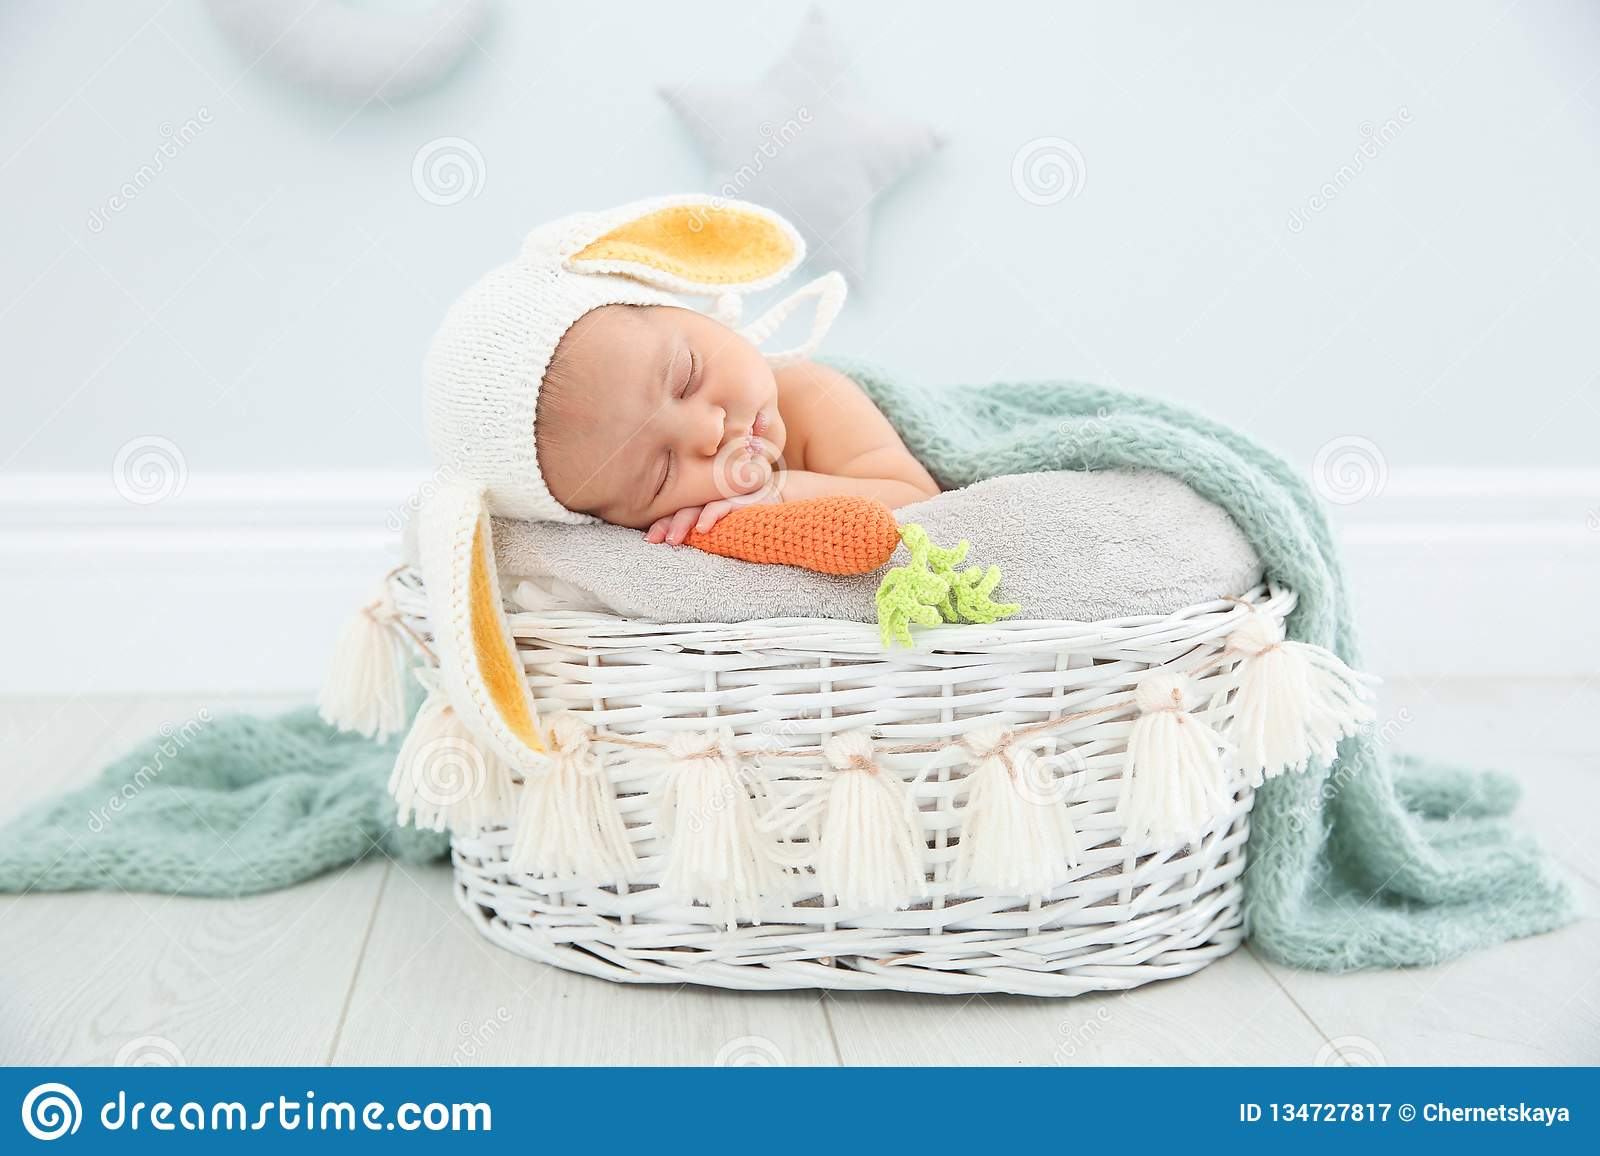 Adorable newborn child wearing bunny ears hat in baby nest